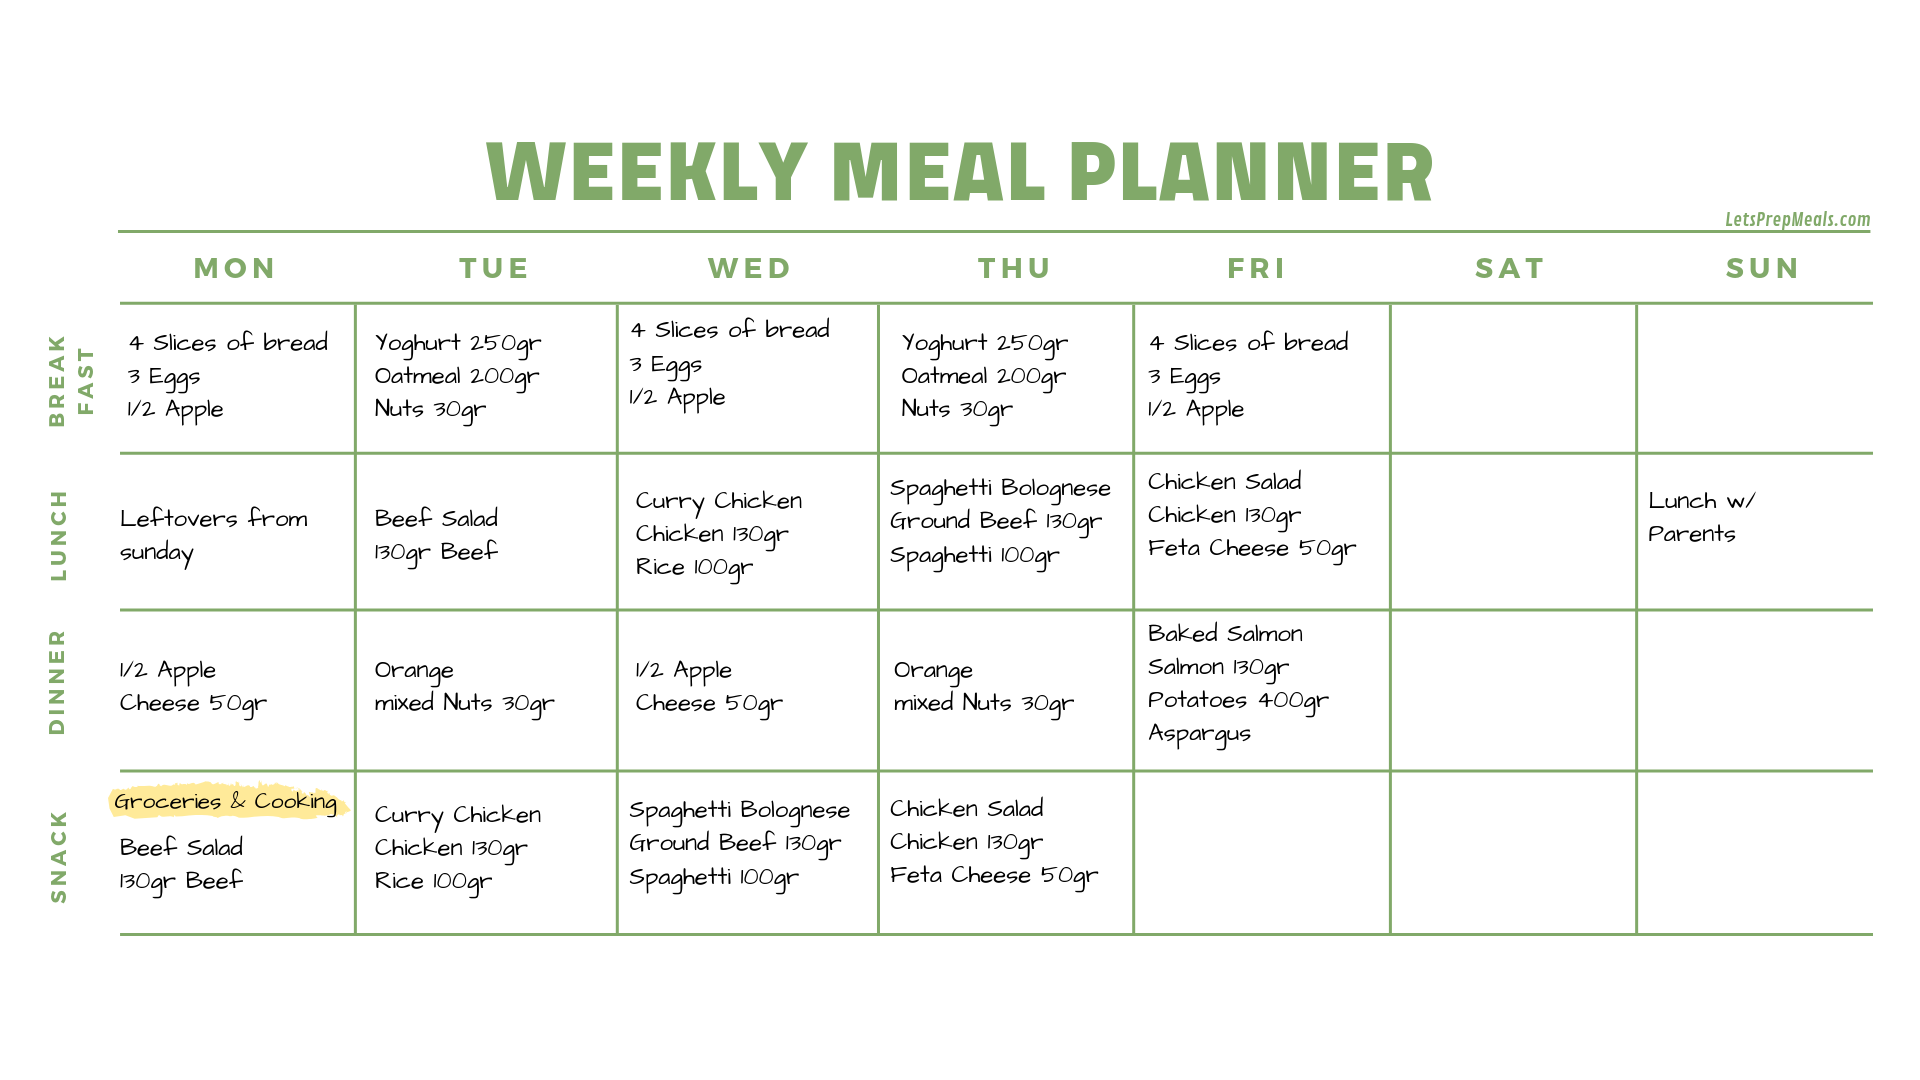 Weekly meal planner filled out with delicious meals.